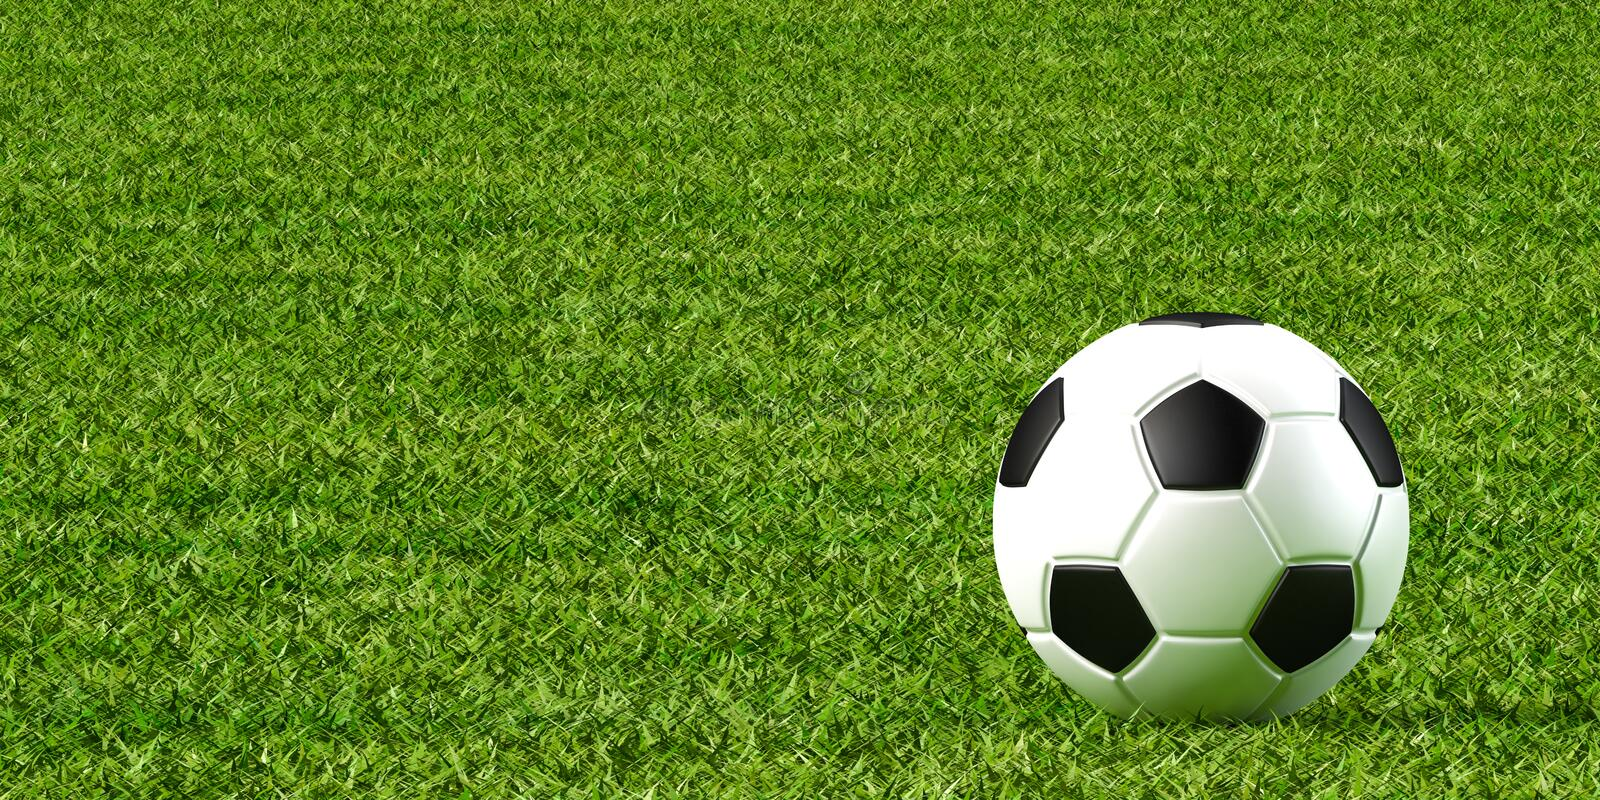 Soccer ball and lawn. 3d illustration of soccer ball and lawn vector illustration